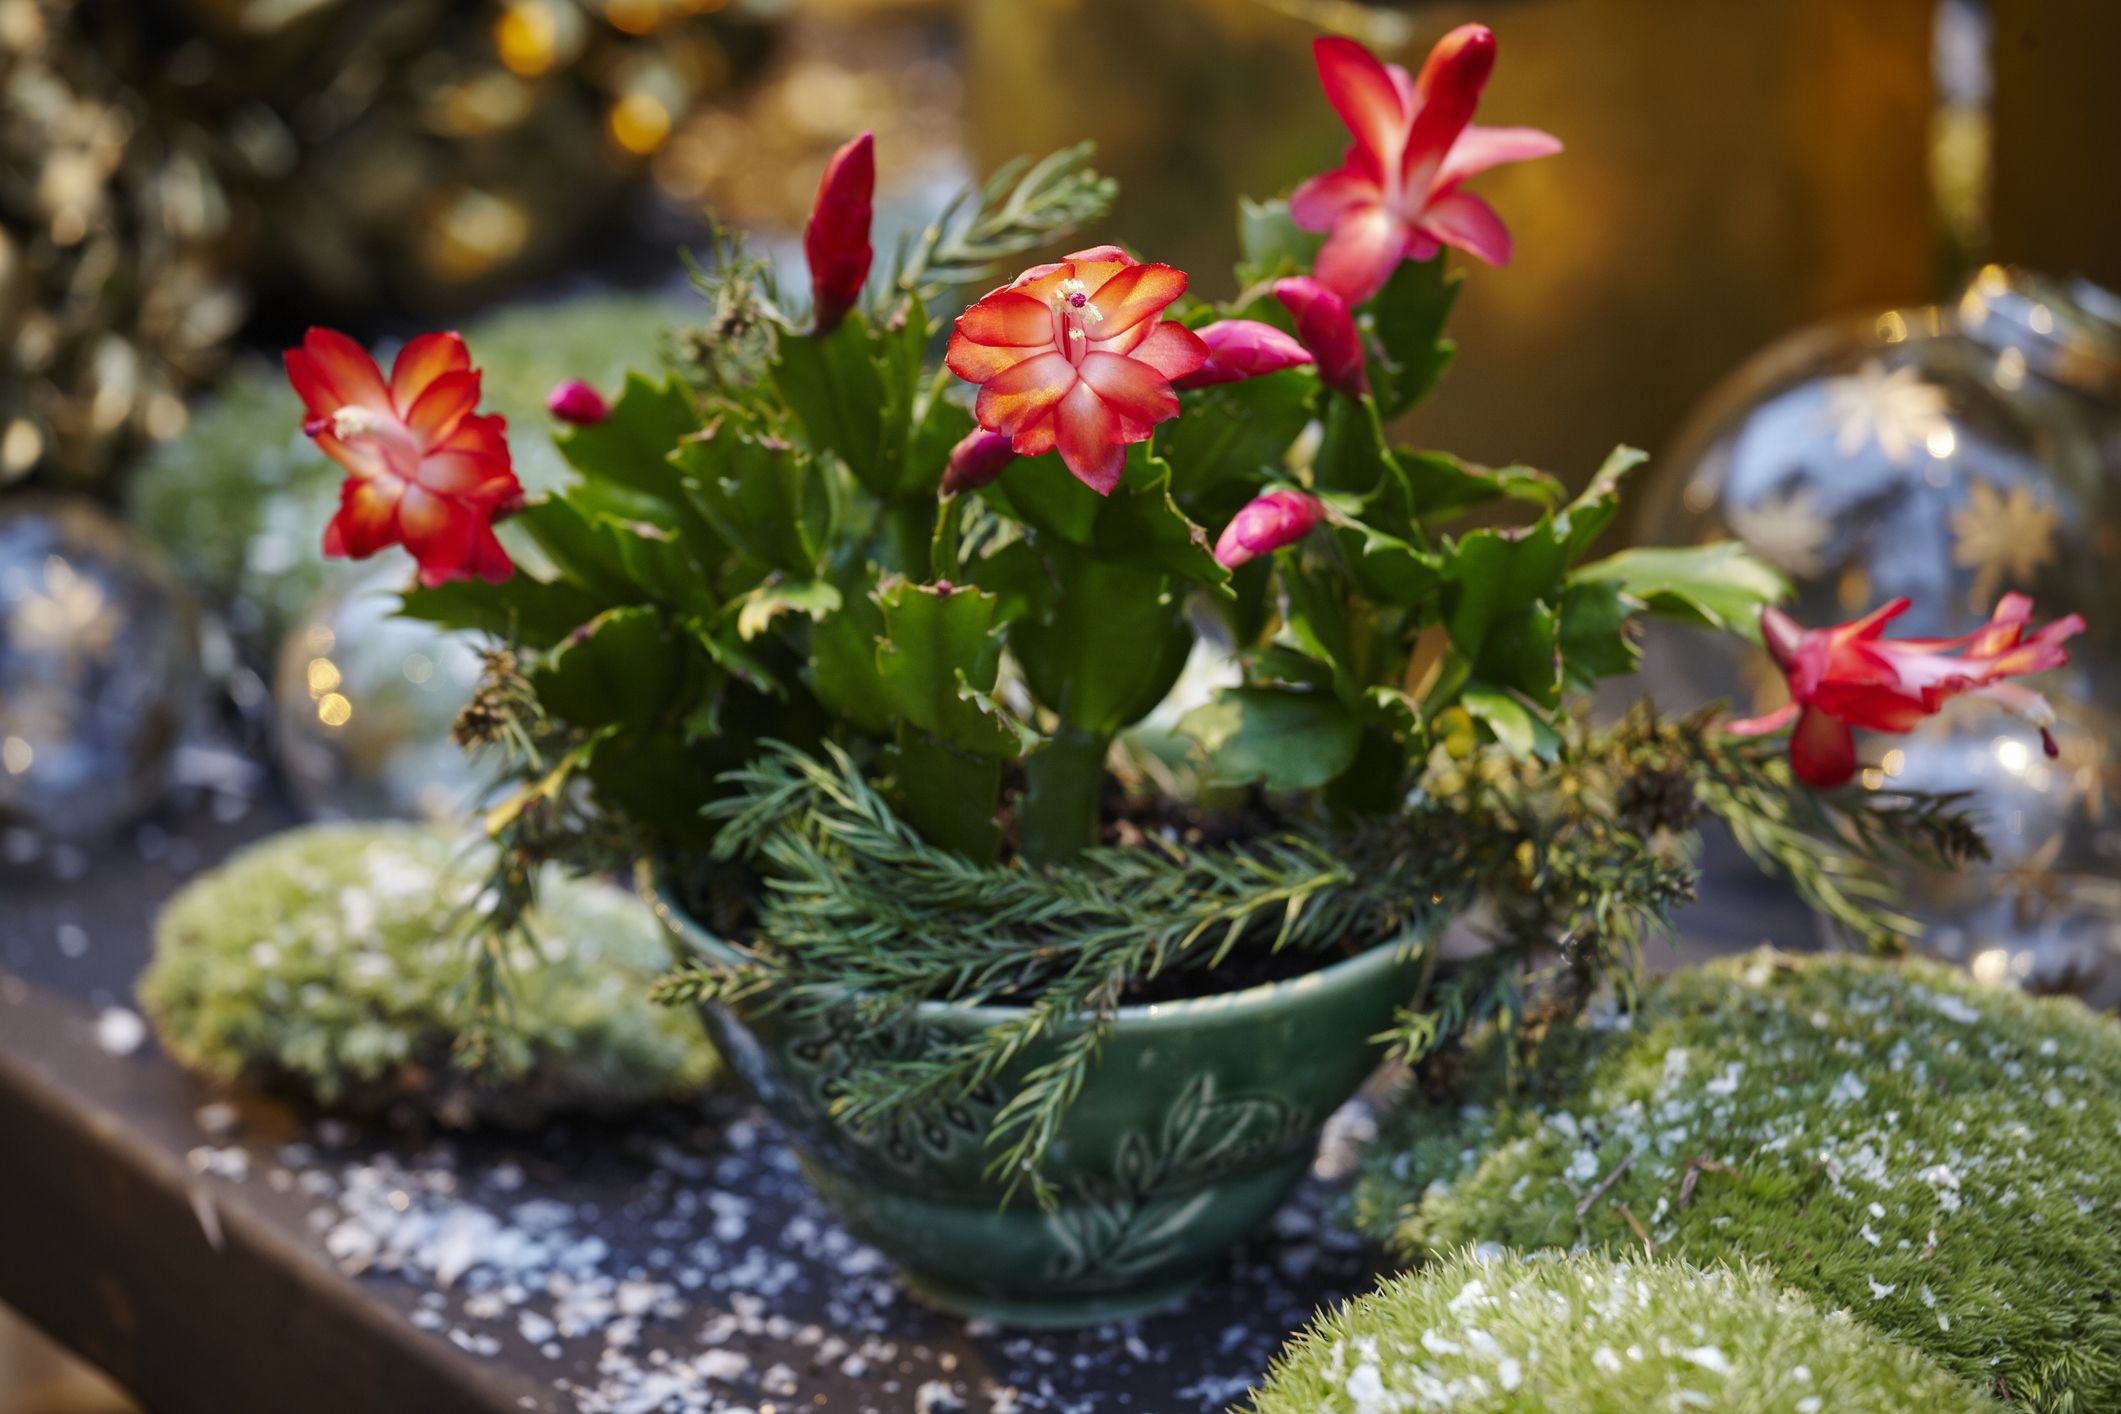 Christmas Cactus Care: Here's What You Should Know About the Beautiful Holiday Plant